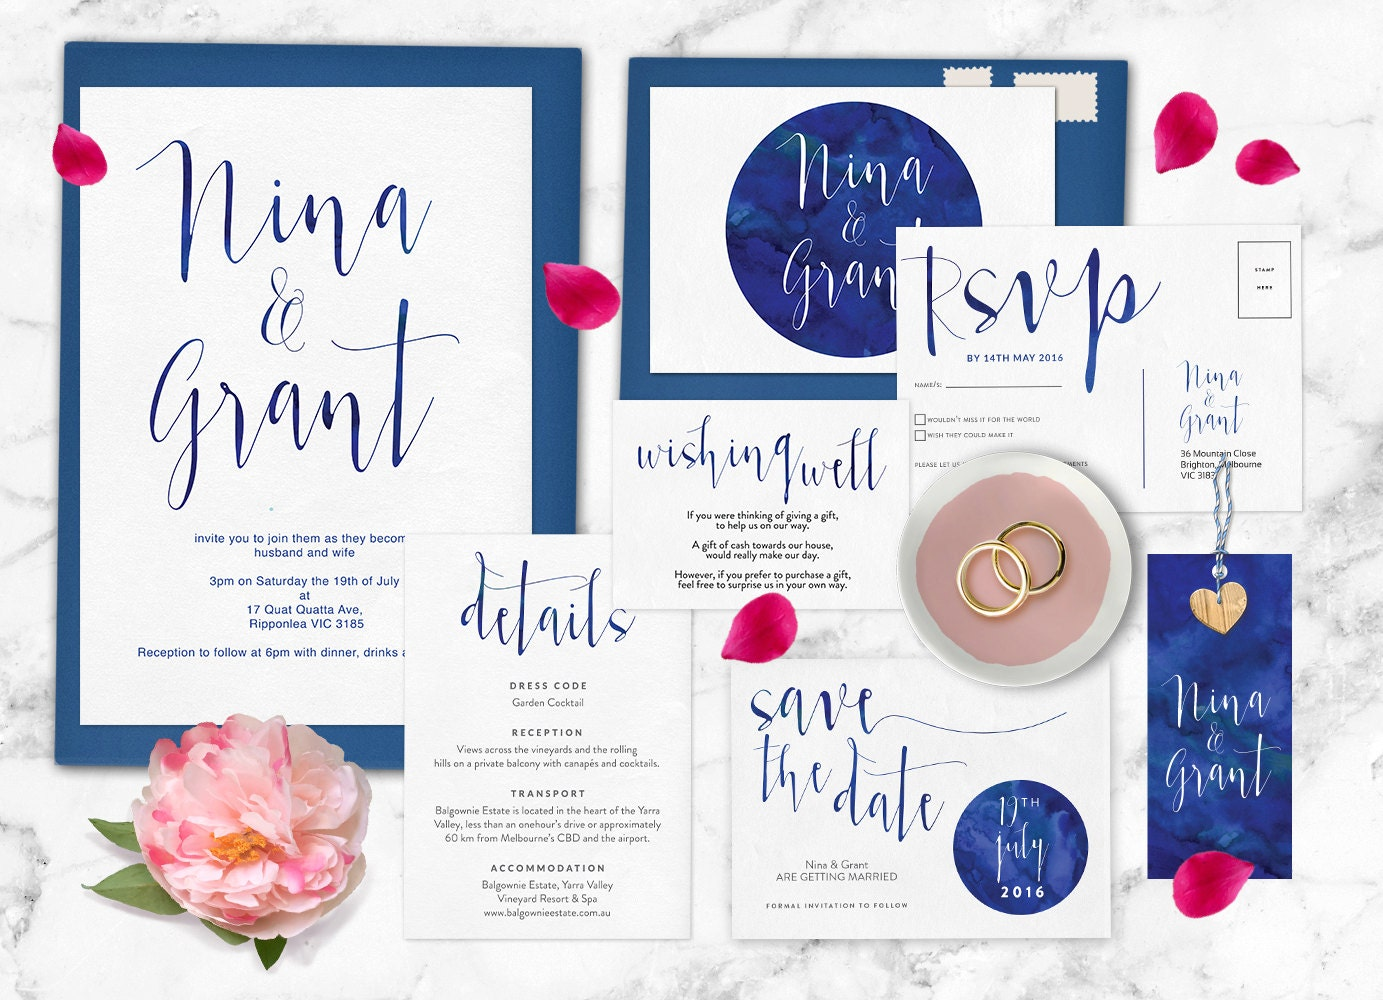 Navy wedding invitation set, Navy wedding invites, Navy blue wedding invitations, Save the date, RSVP postcard, Wedding set, Wedding suite